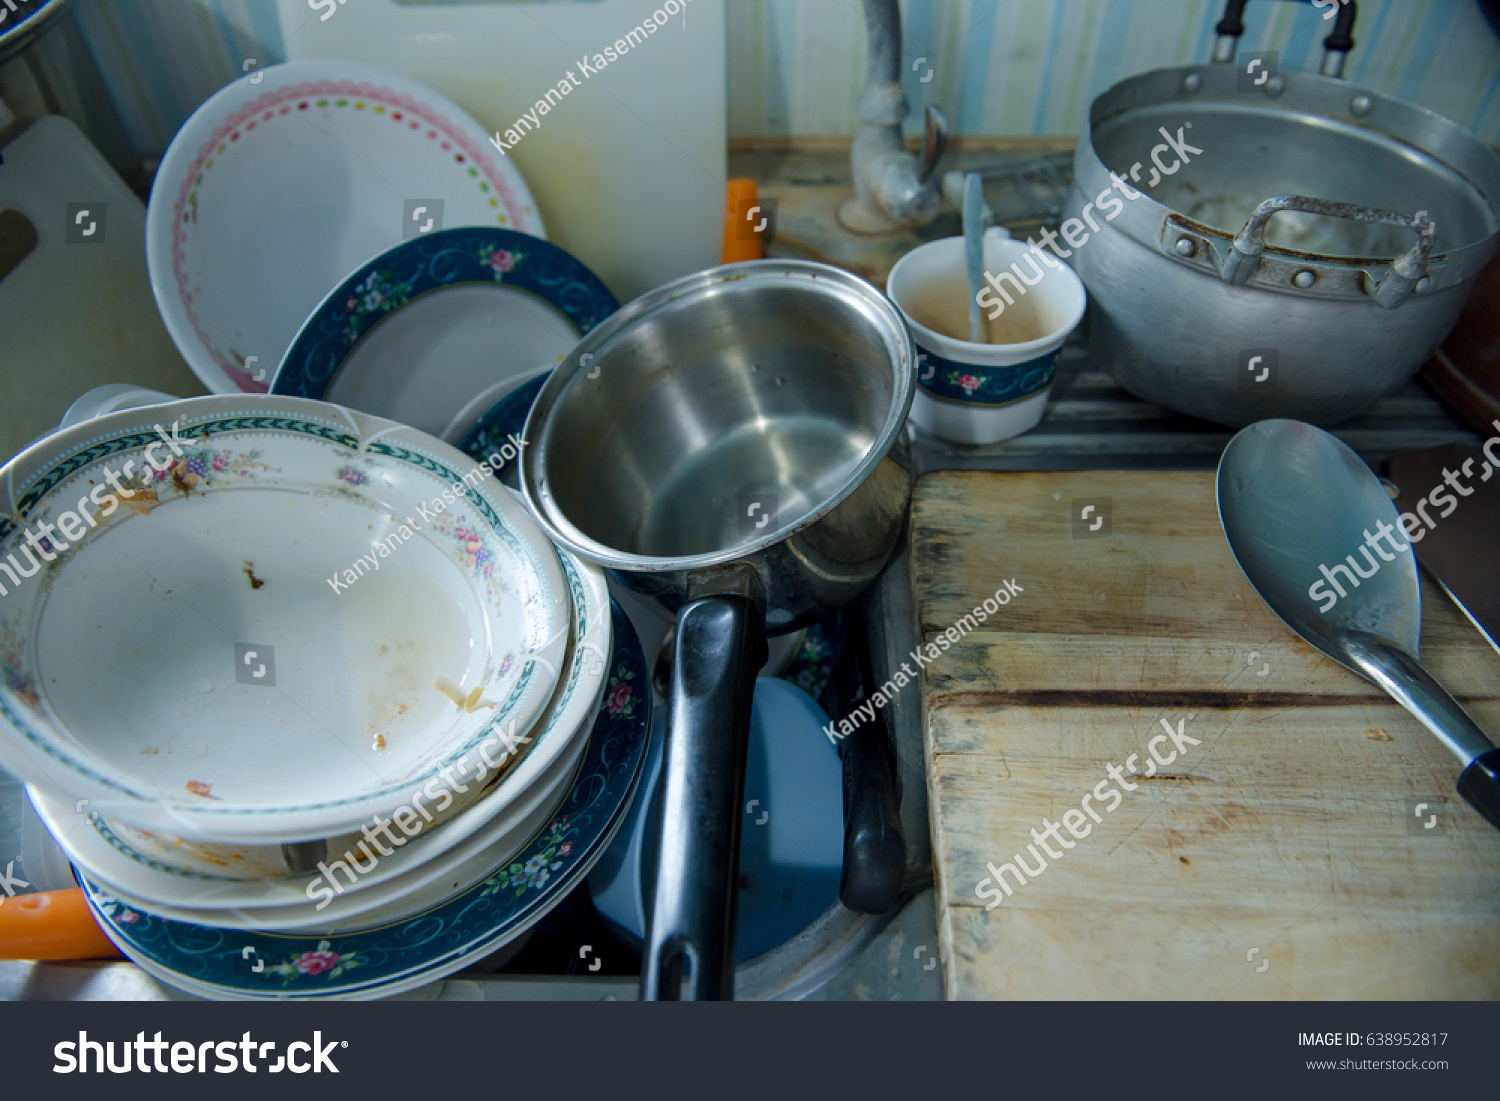 Very Dirty Kitchen Dirty Dishes Sink Stock Photo (Royalty Free ...